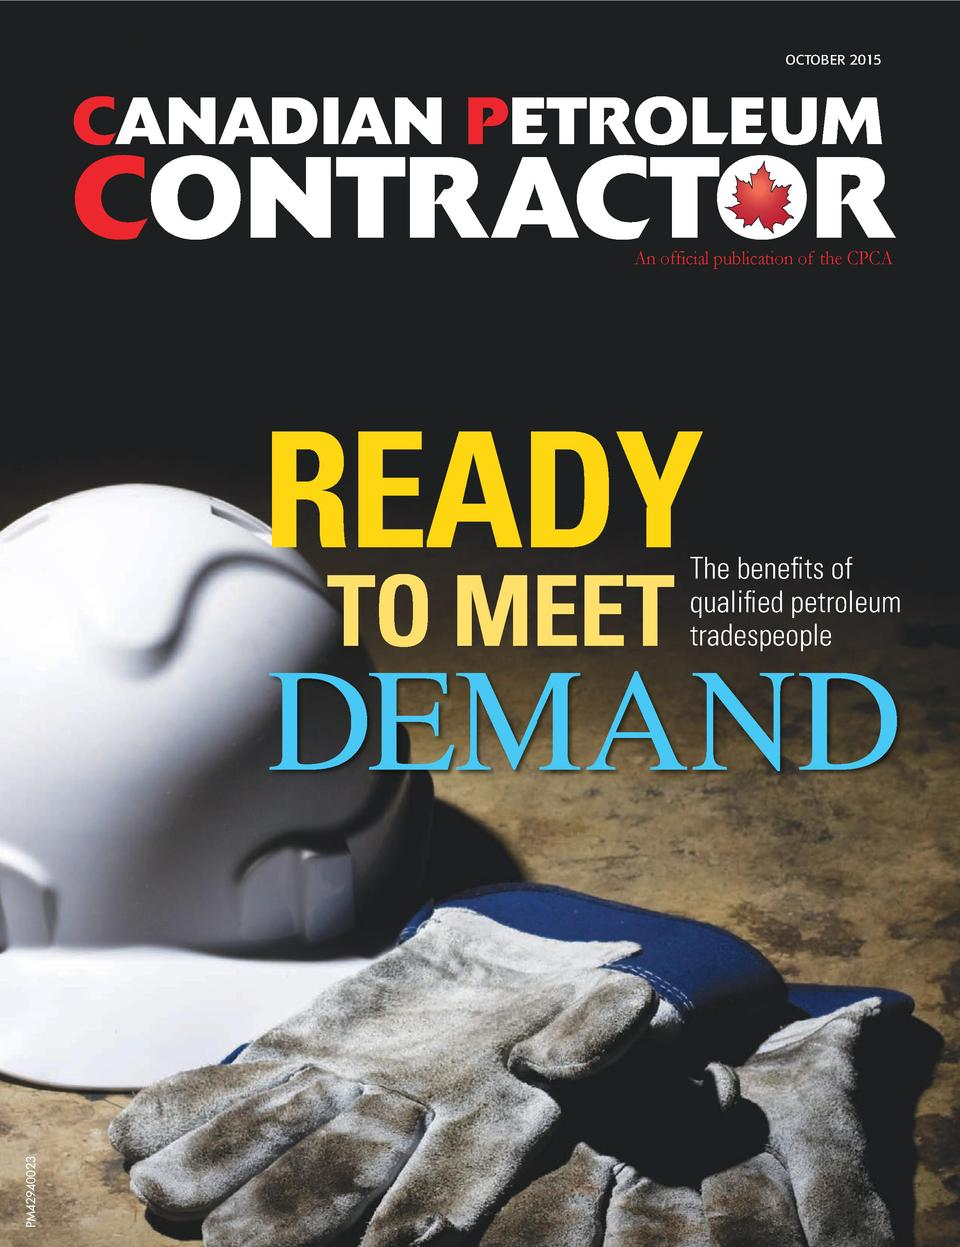 OCTOBER 2015  CANADIAN PETROLEUM  CONTRACTOR  READY TO MEET  The benefits of qualified petroleum tradespeople  PM42940023 ...